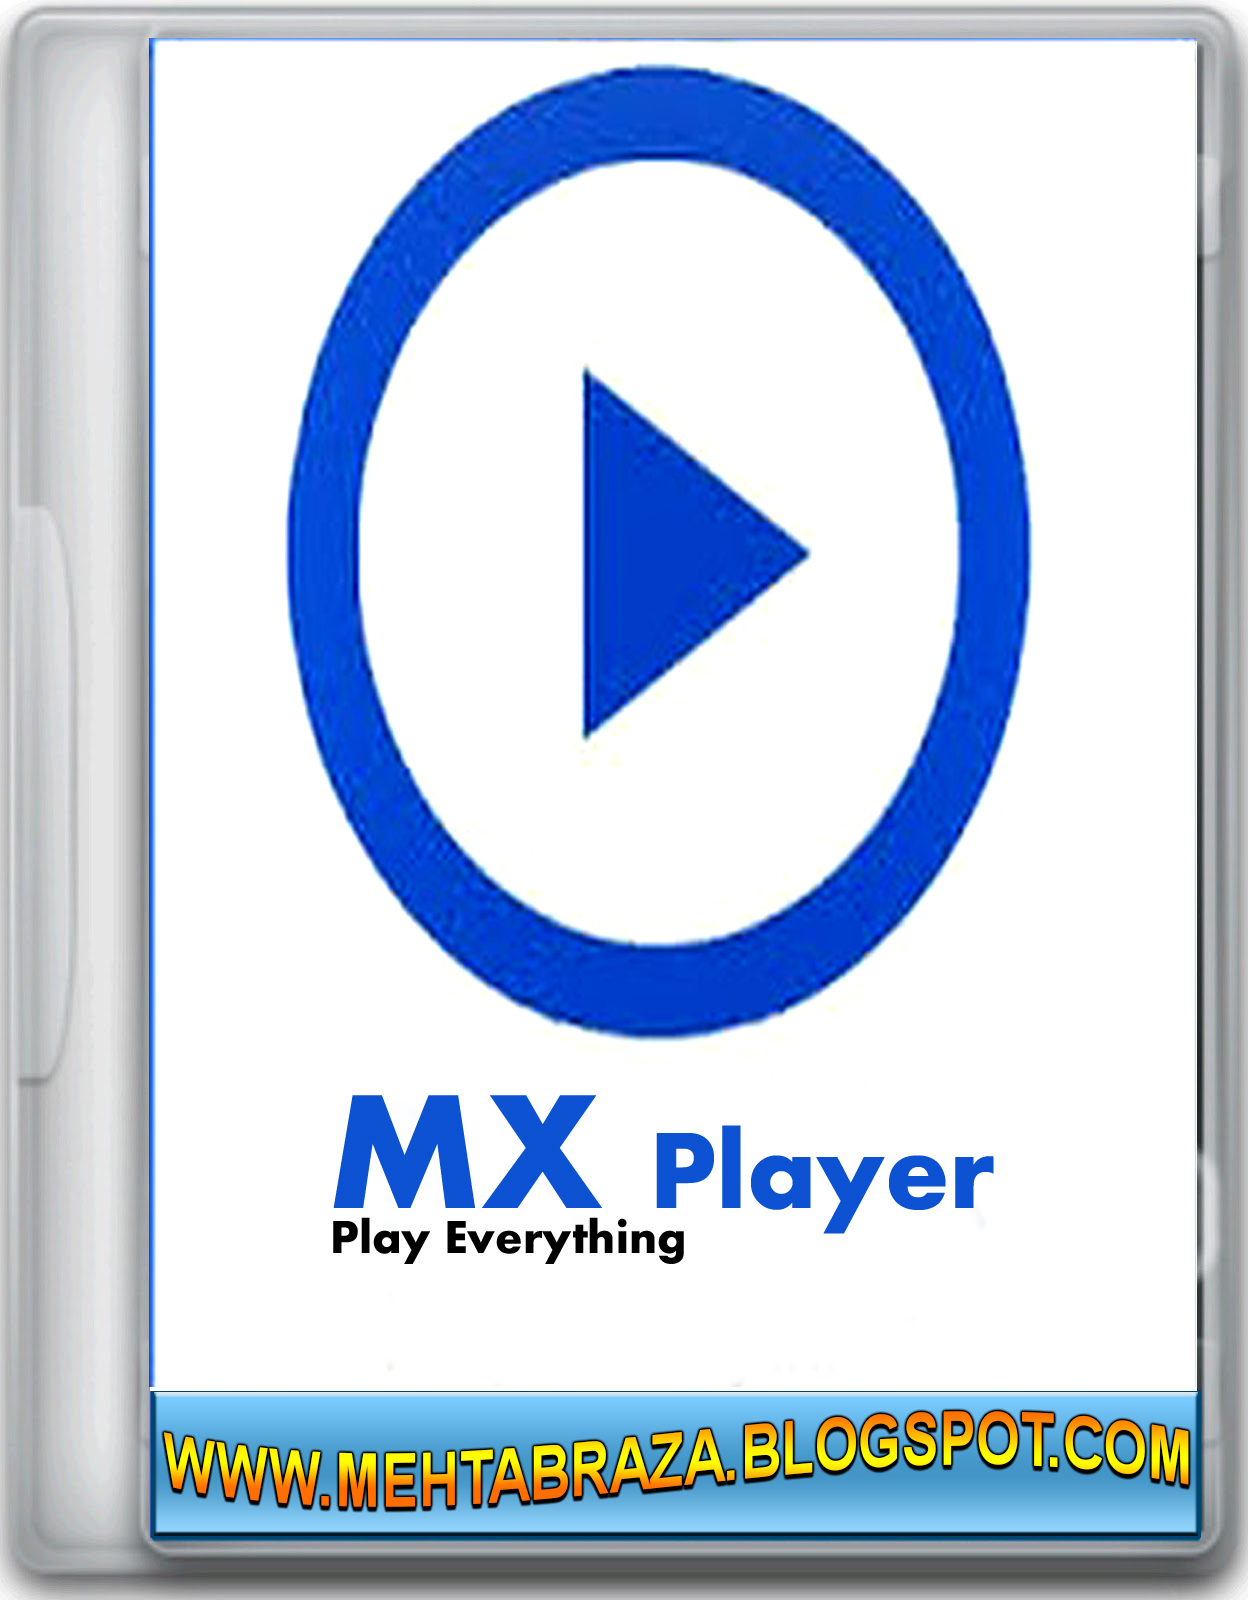 Mx player to download | MX Player for Android Free Download  2019-05-25